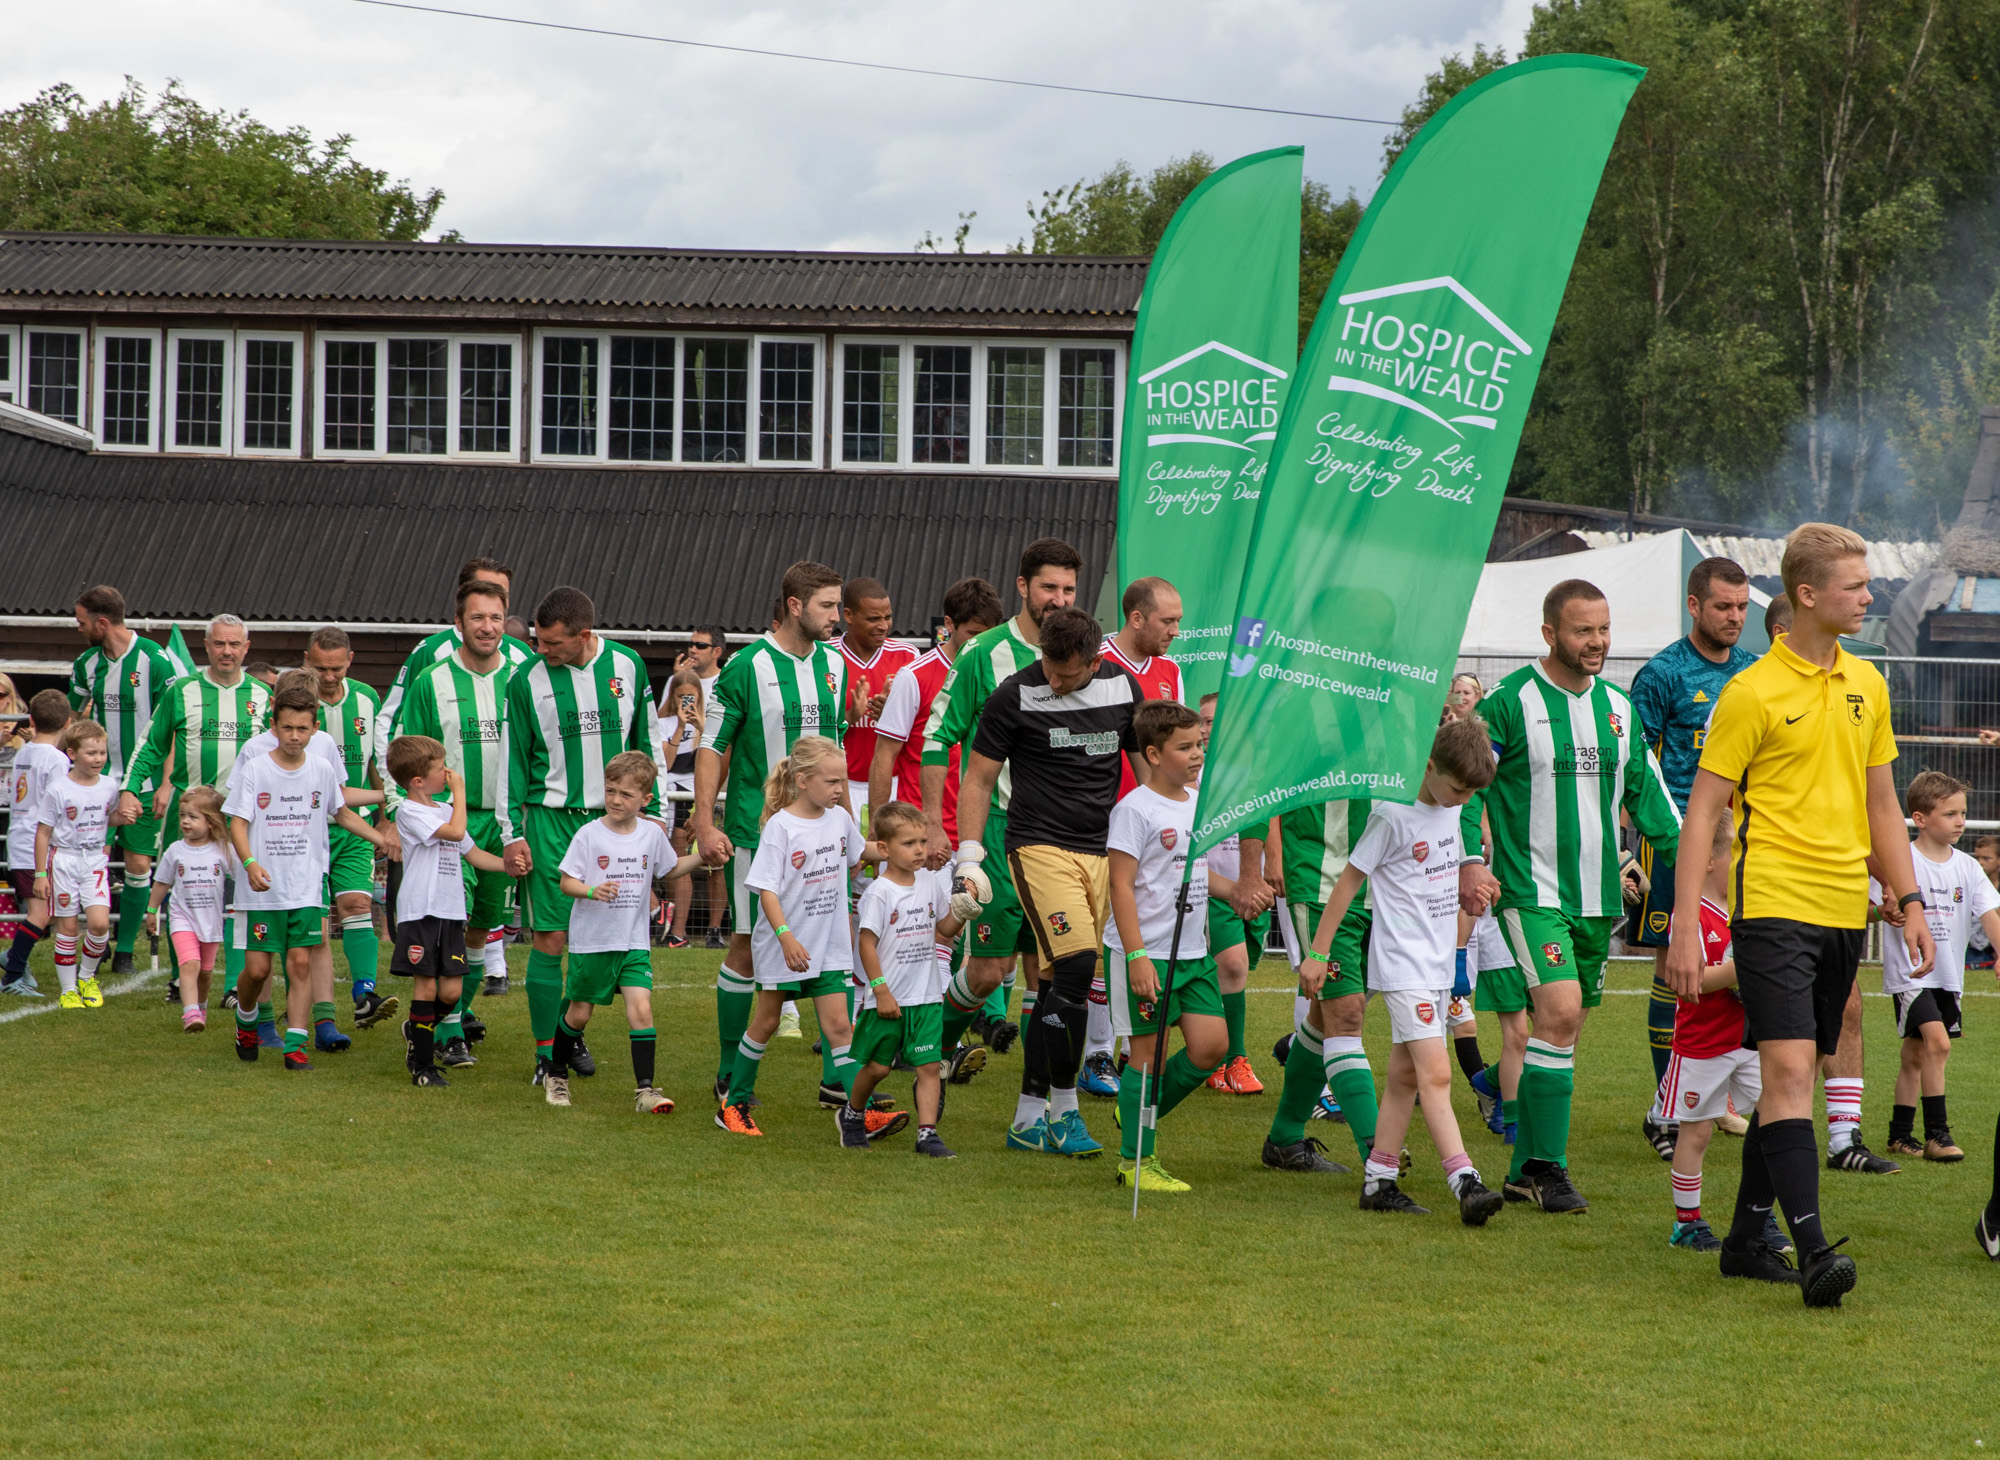 Rusthall FC walking on pitch with our flags in hand